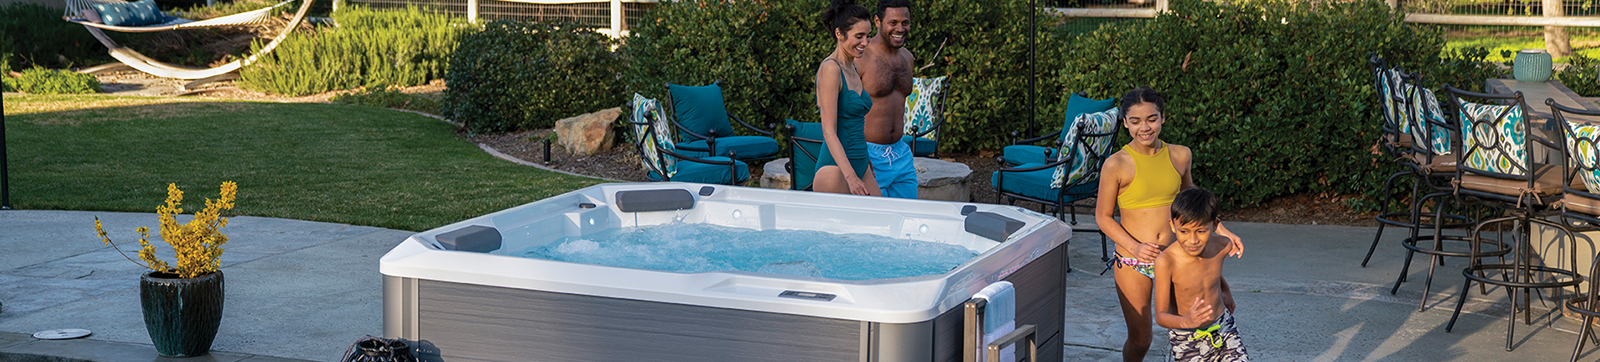 End Sleepless Nights by Relaxing in the Family Spa, Large Hot Tubs Chesterfield